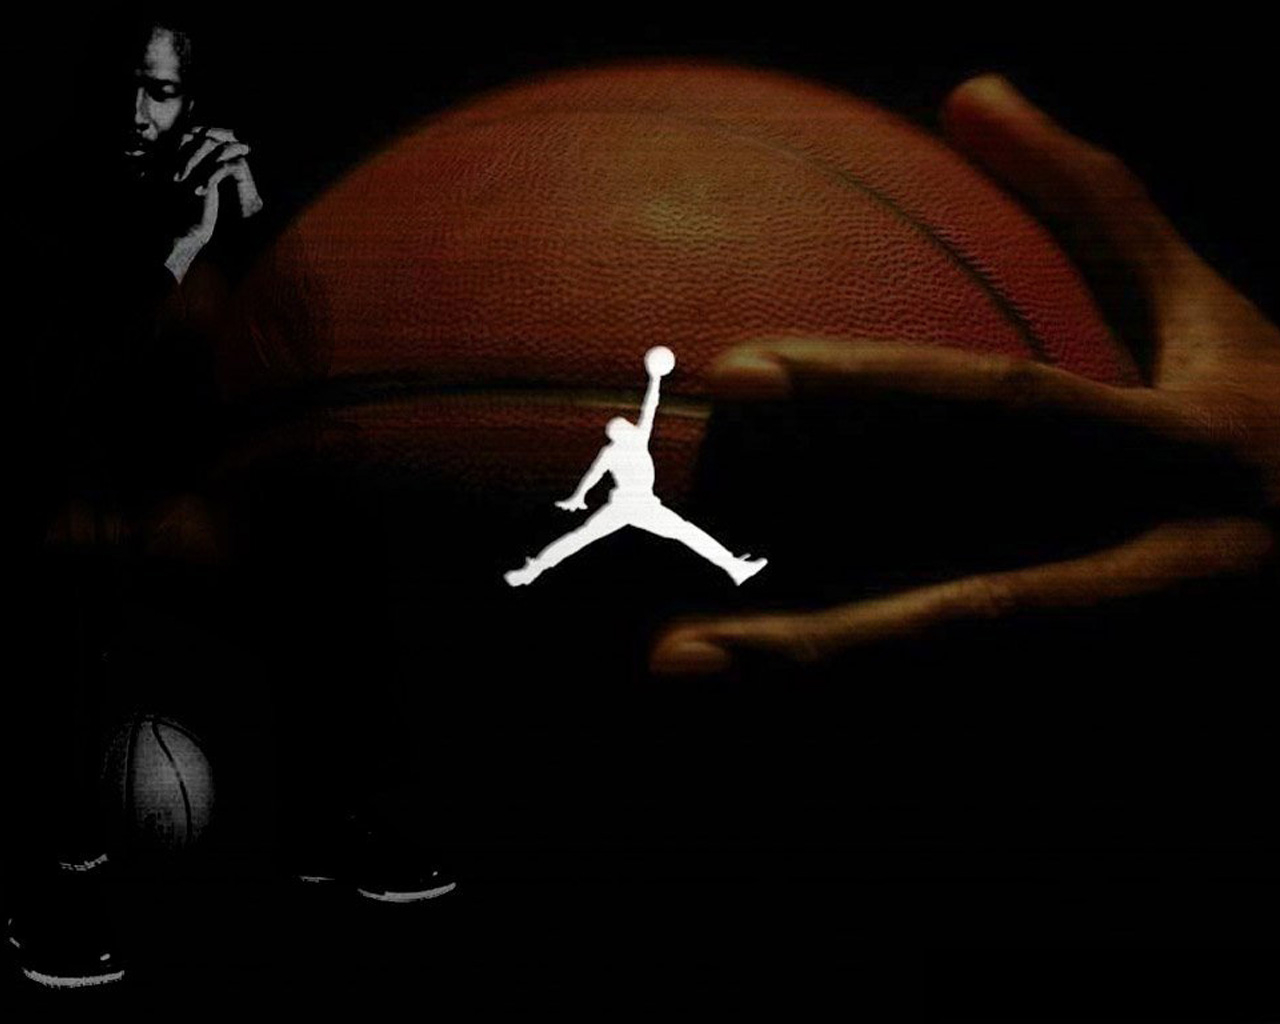 basketball hd wallpapers basketball hd wallpapers basketball hd 1280x1024